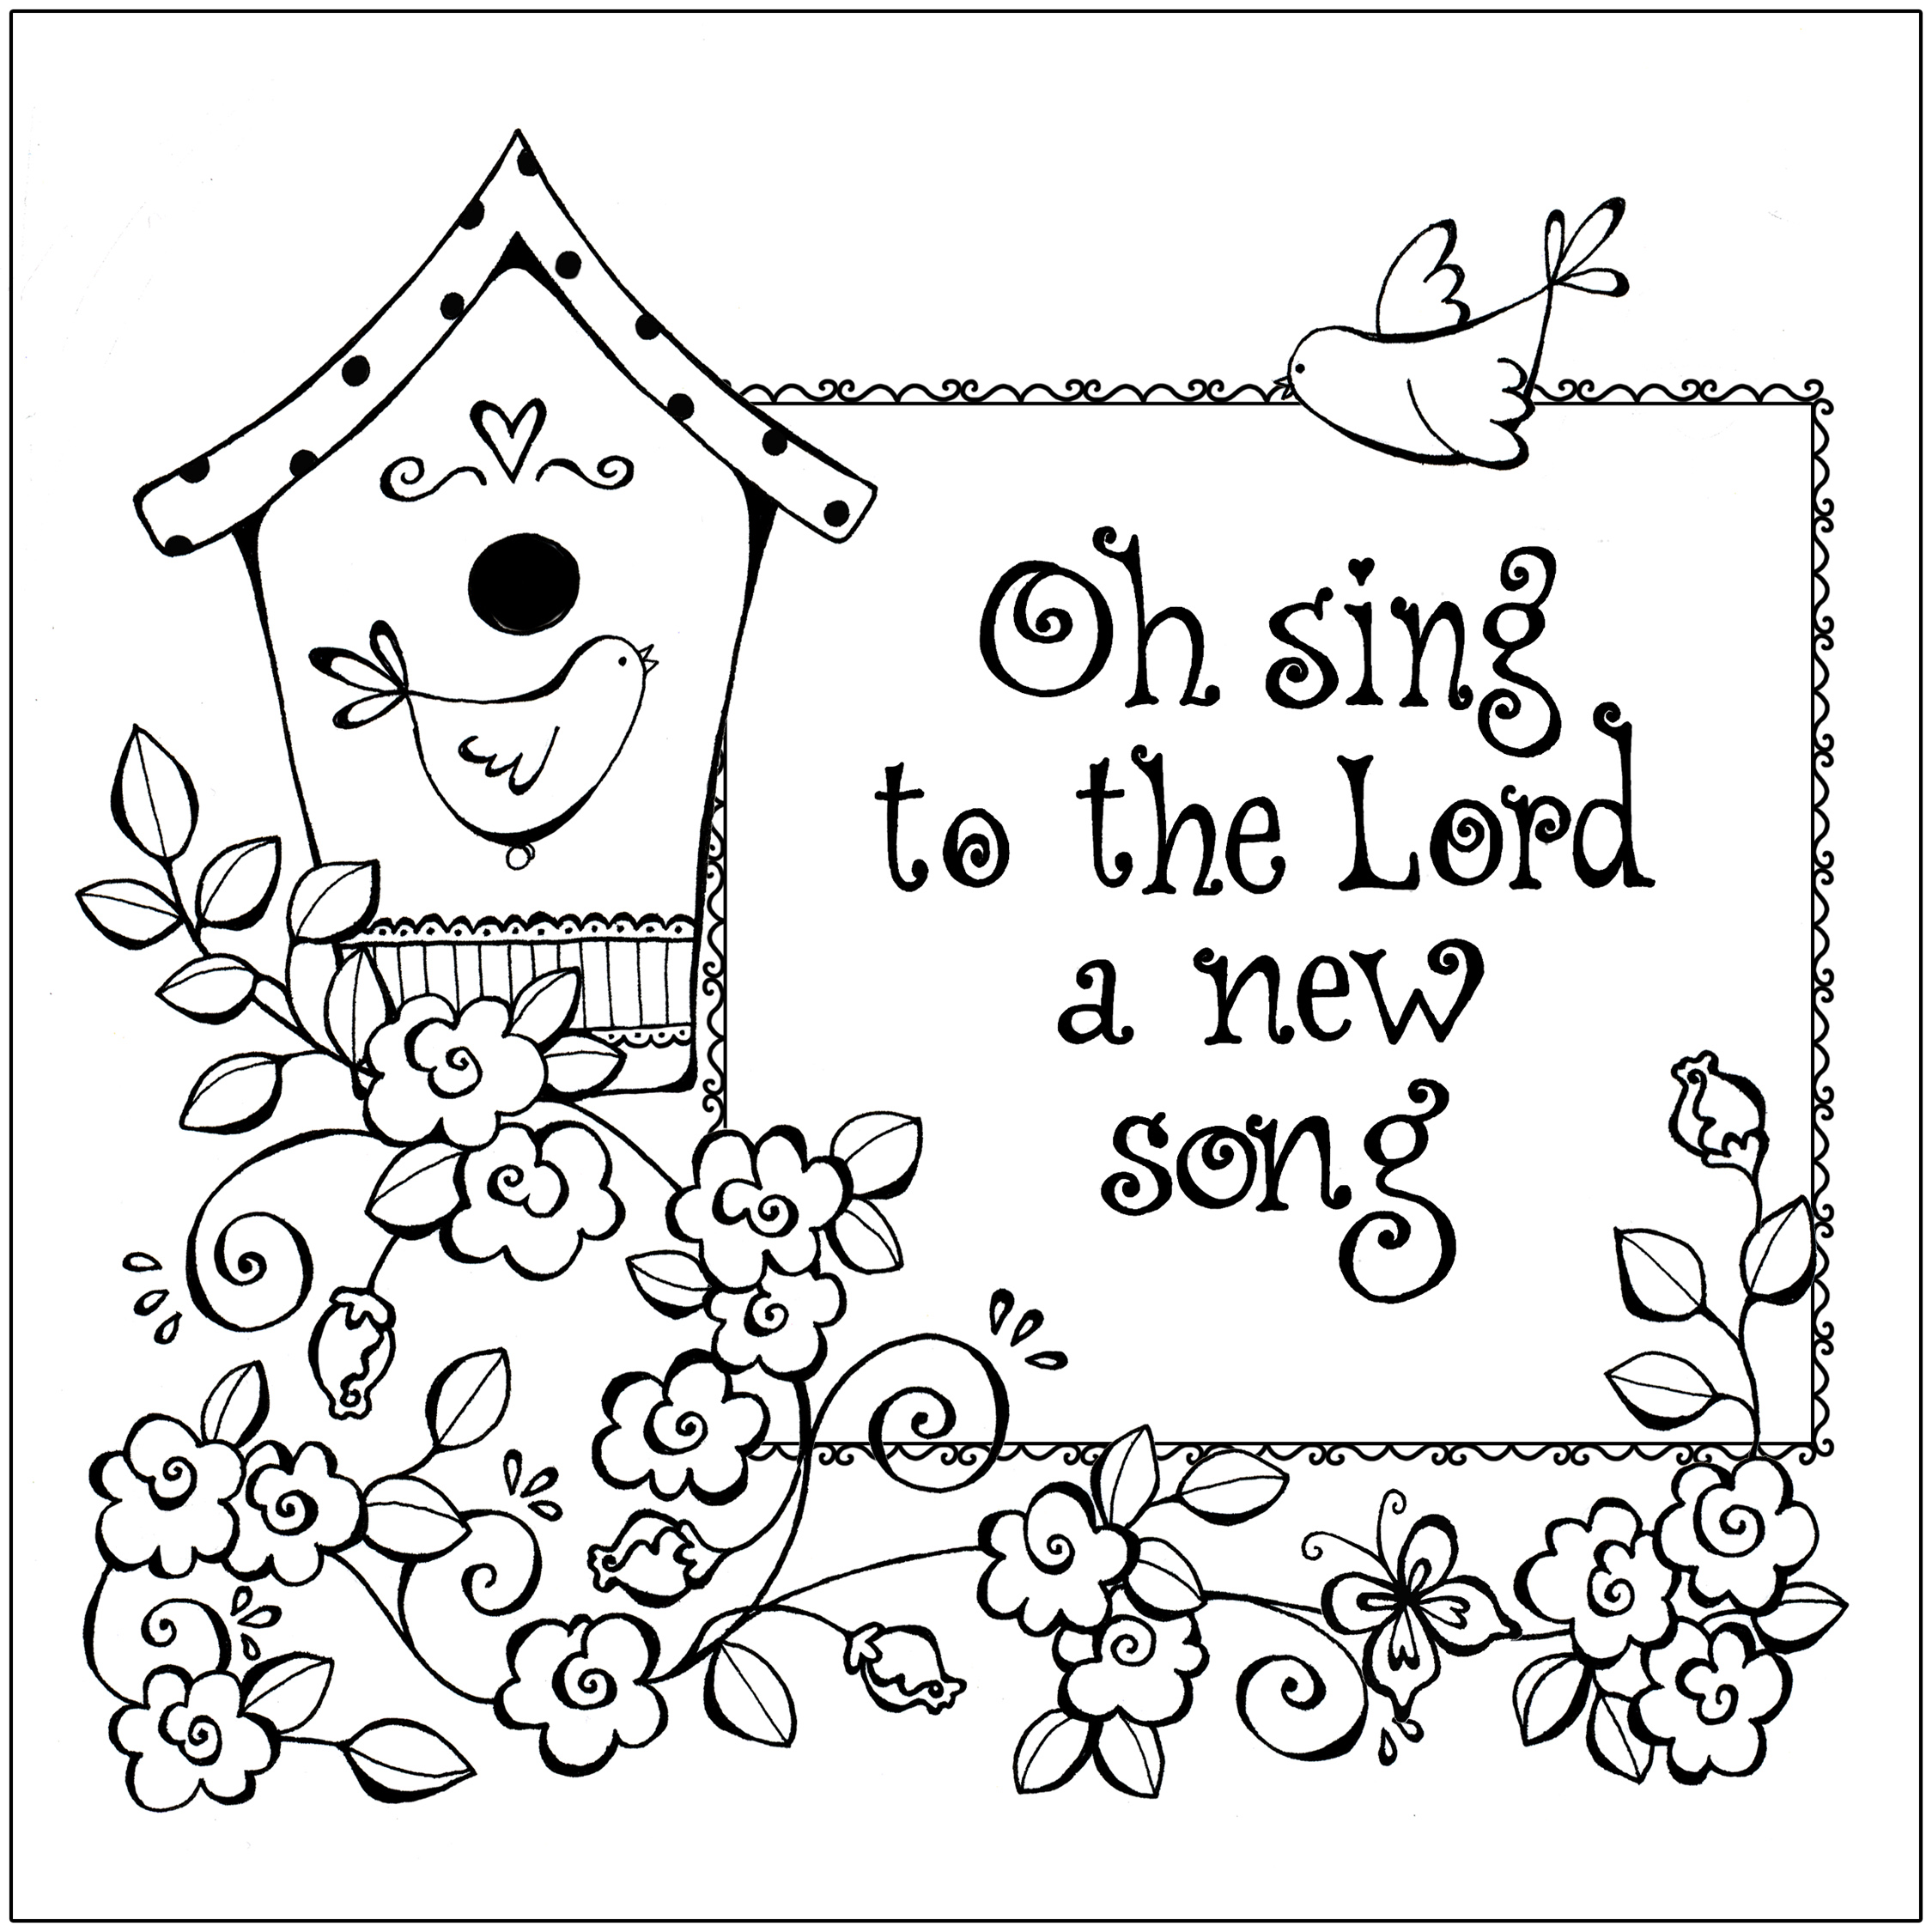 Christian Coloring Pages Glamorous Free Printable Christian Coloring Pages For Kids  Best Coloring .